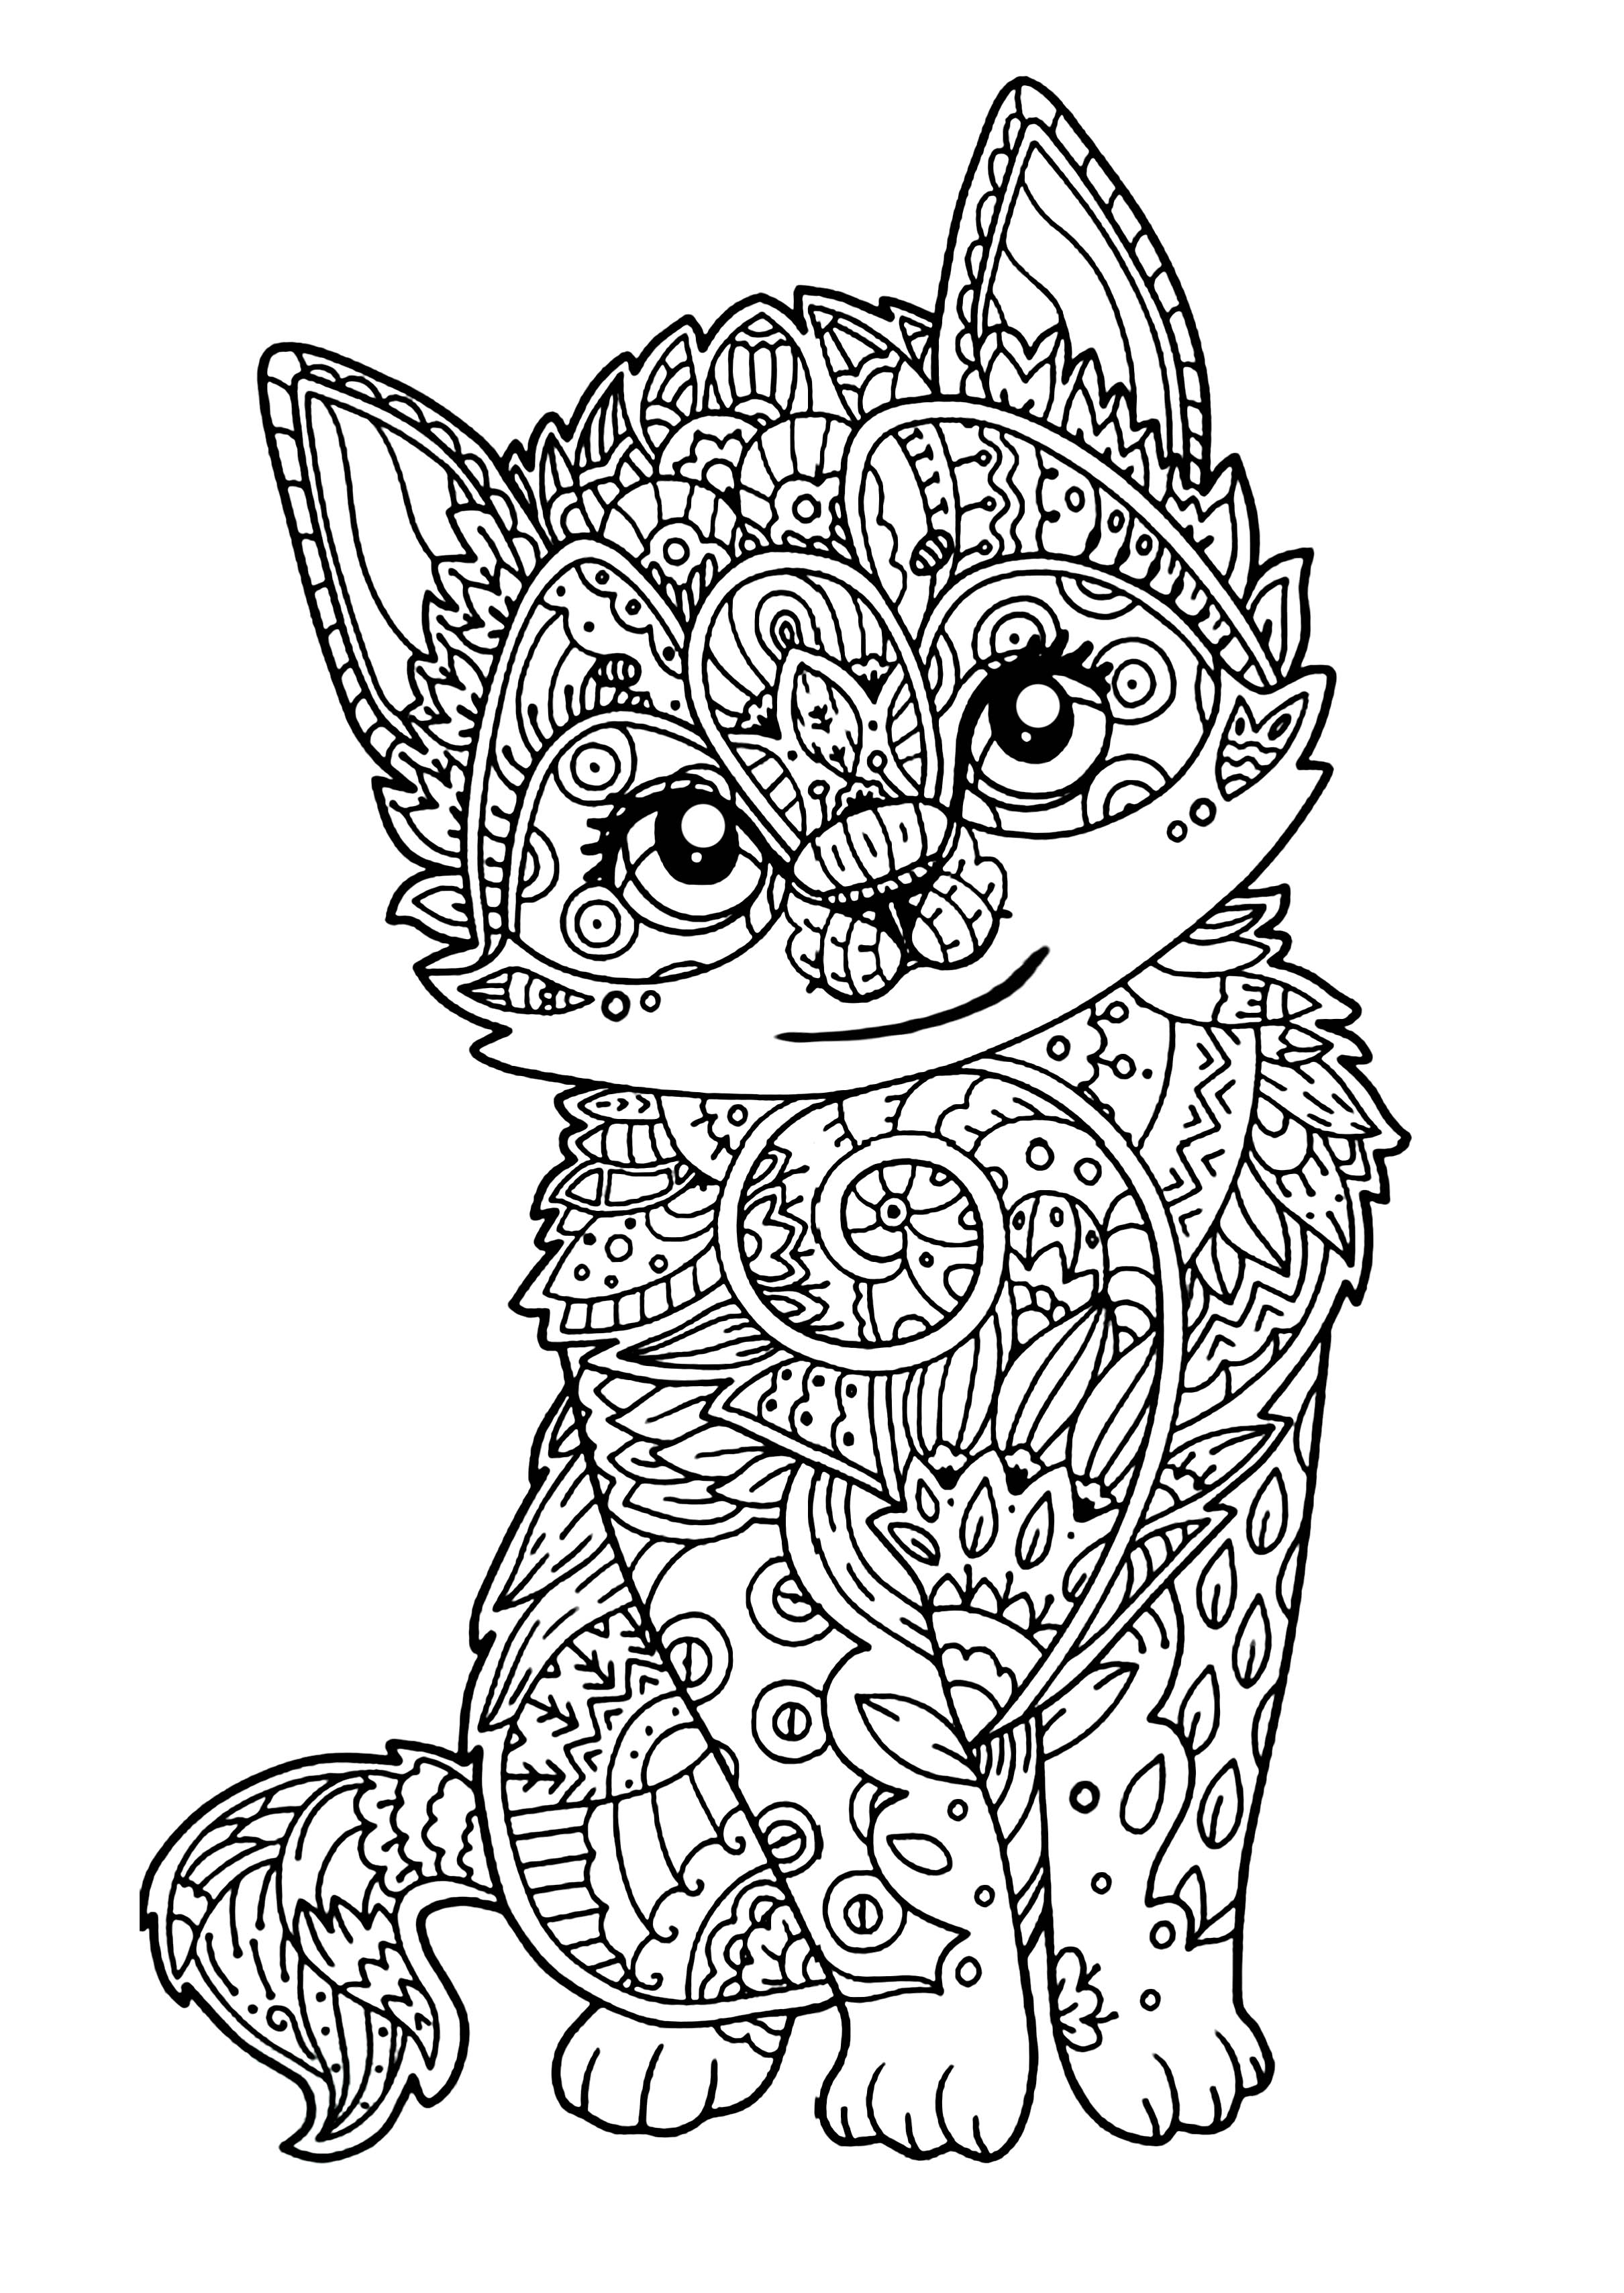 Coloring cute kitten